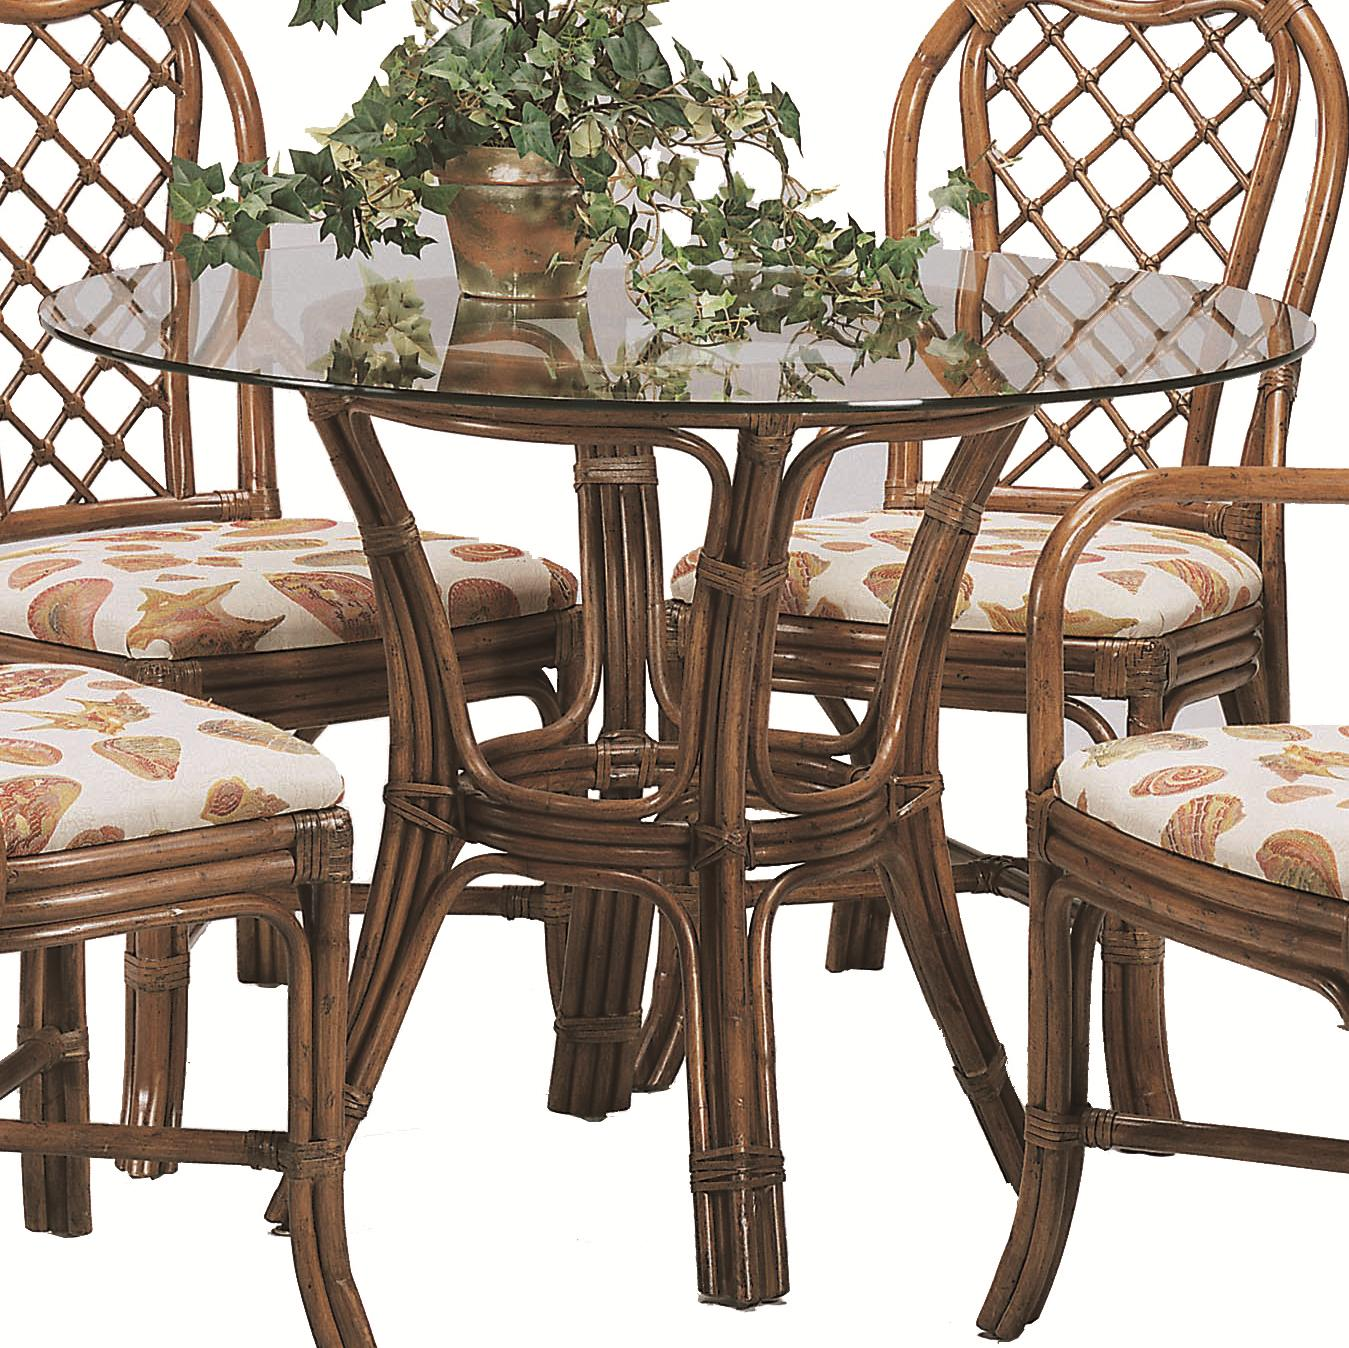 979 Dining Table by Braxton Culler at Esprit Decor Home Furnishings